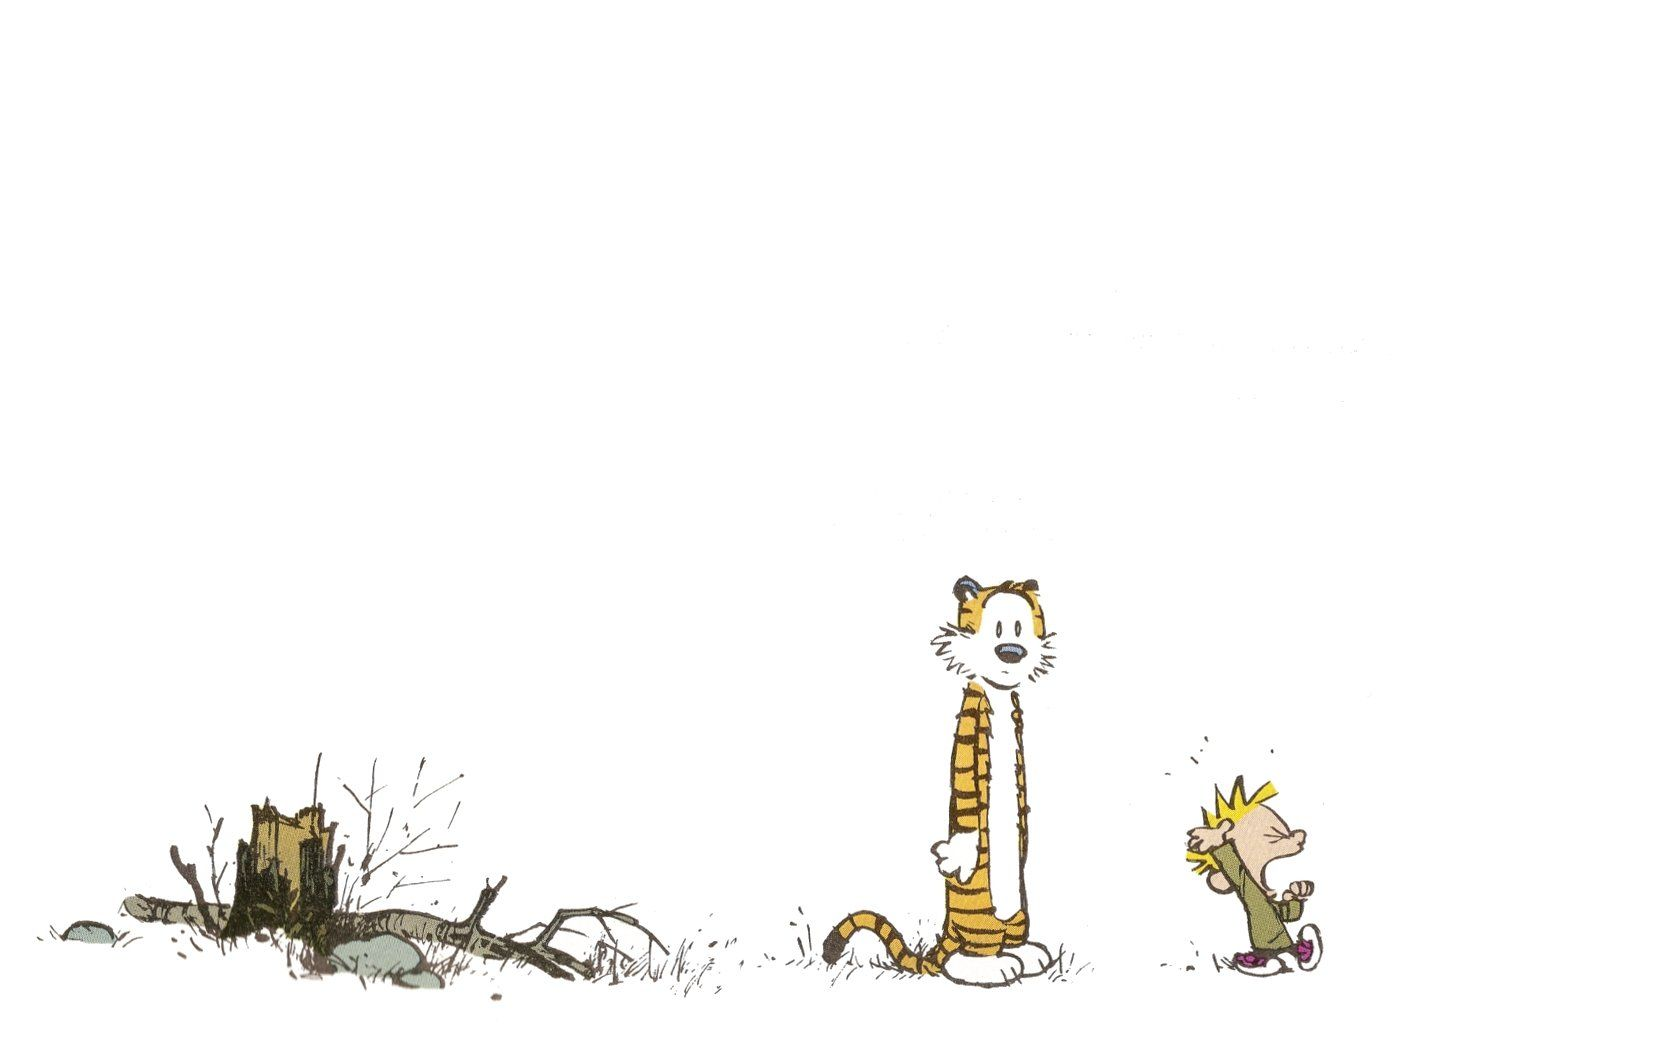 Space Stars Blue Comics Calvin And Hobbes Wallpapers Hd 1680x1050